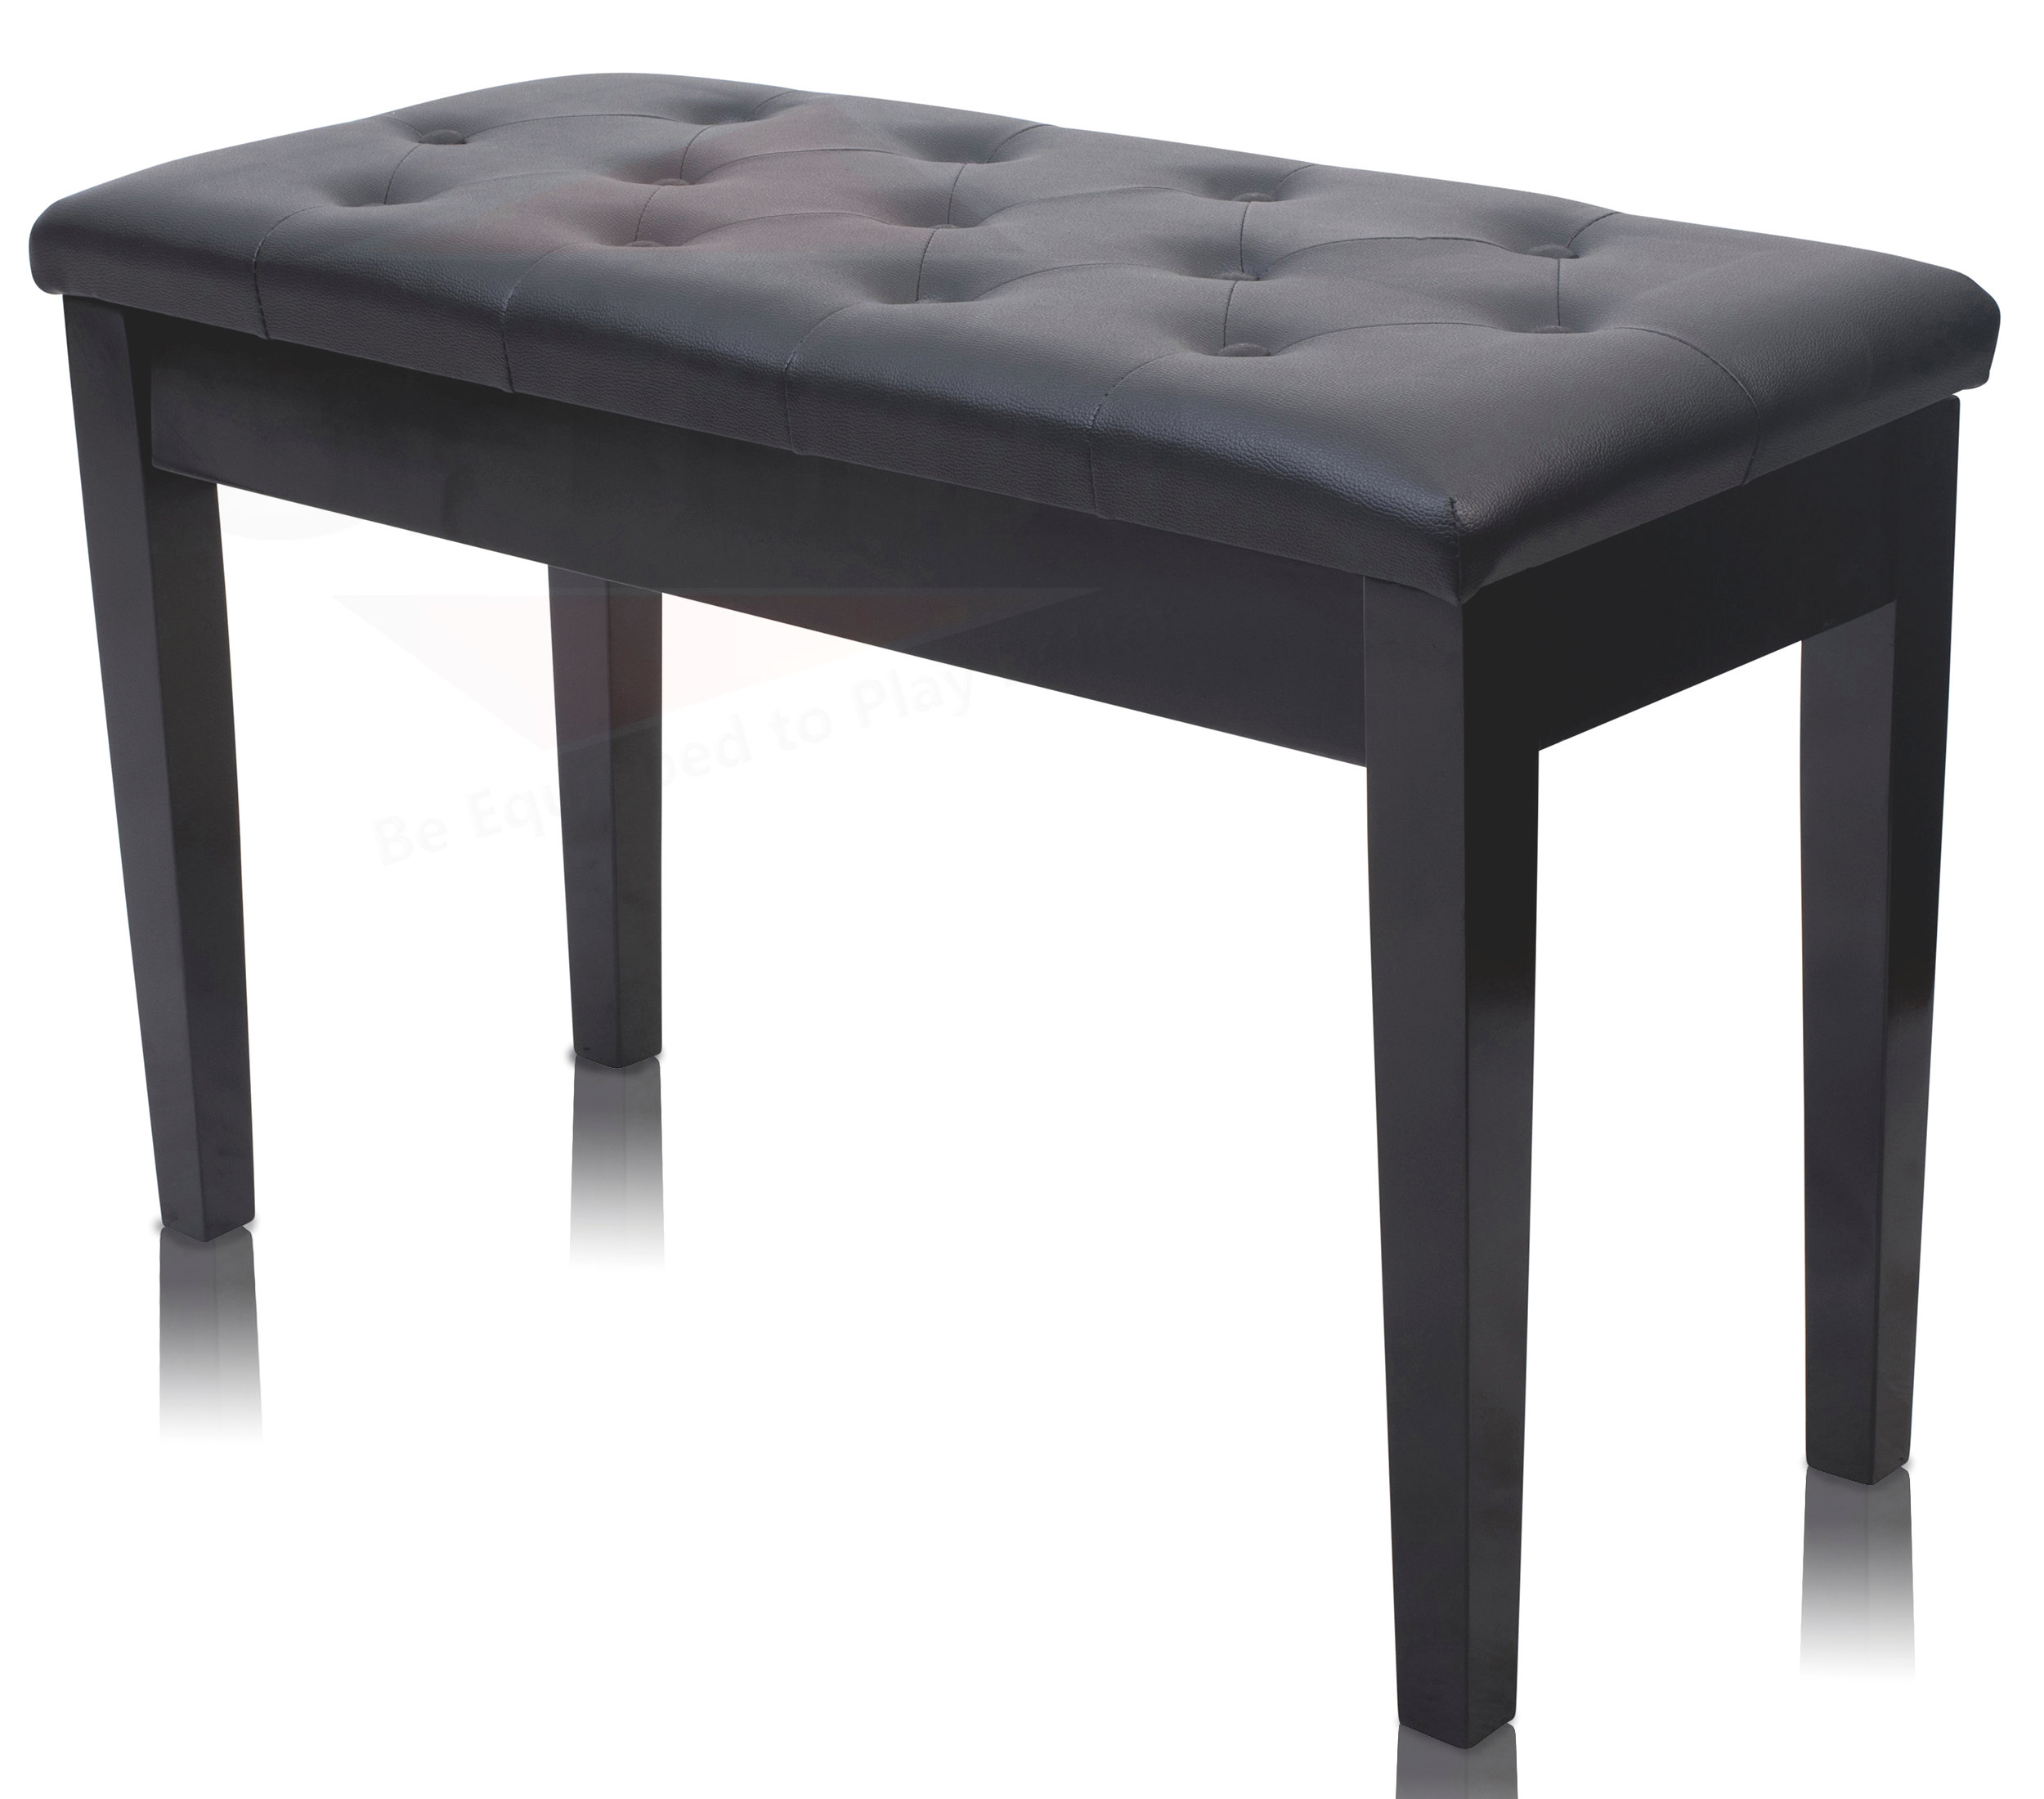 Black Piano Bench With Storage By Griffin Leather Wood